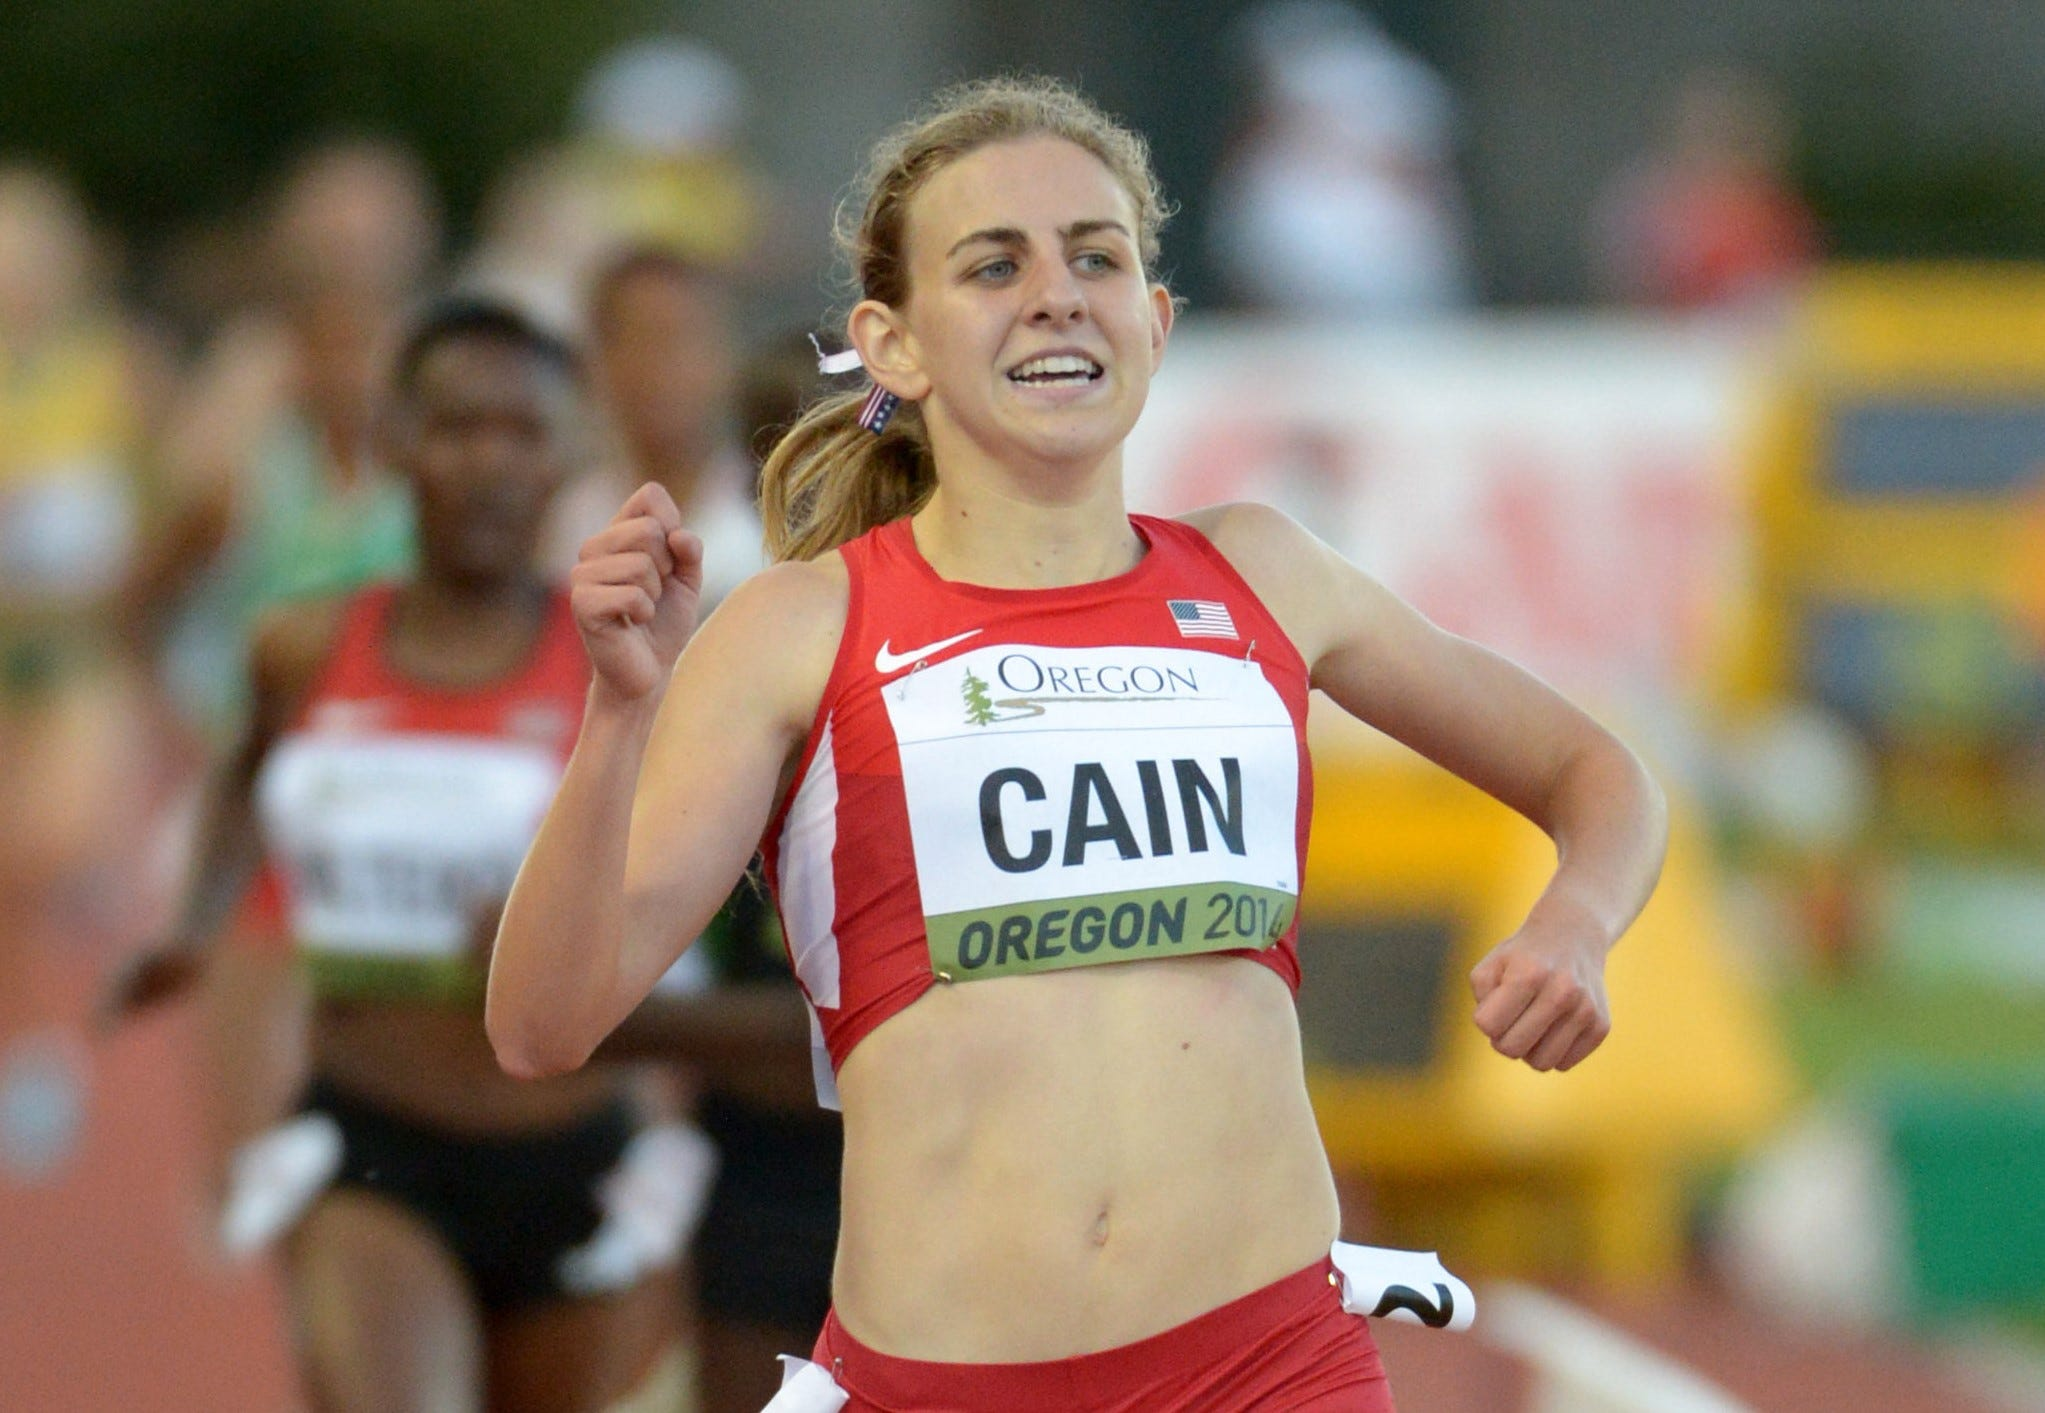 Opinion: Mary Cain's allegations against Nike, Oregon Project need to be independently investigated